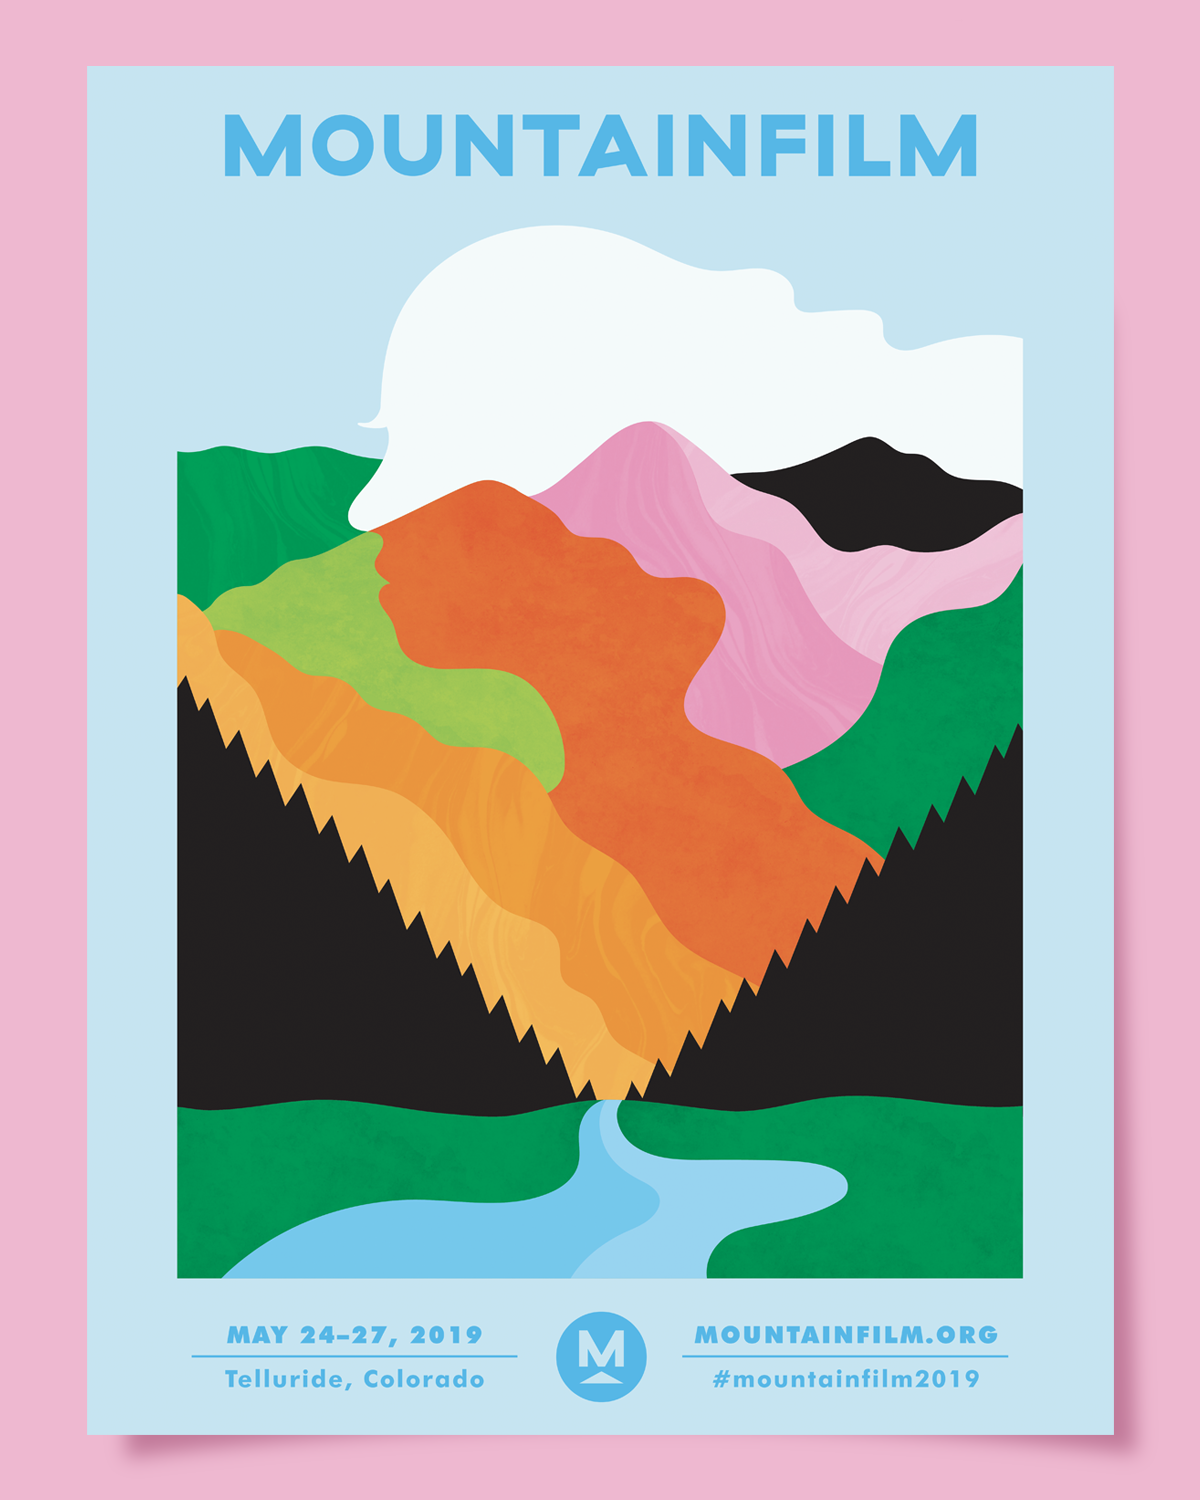 MountainFilm_IG.png